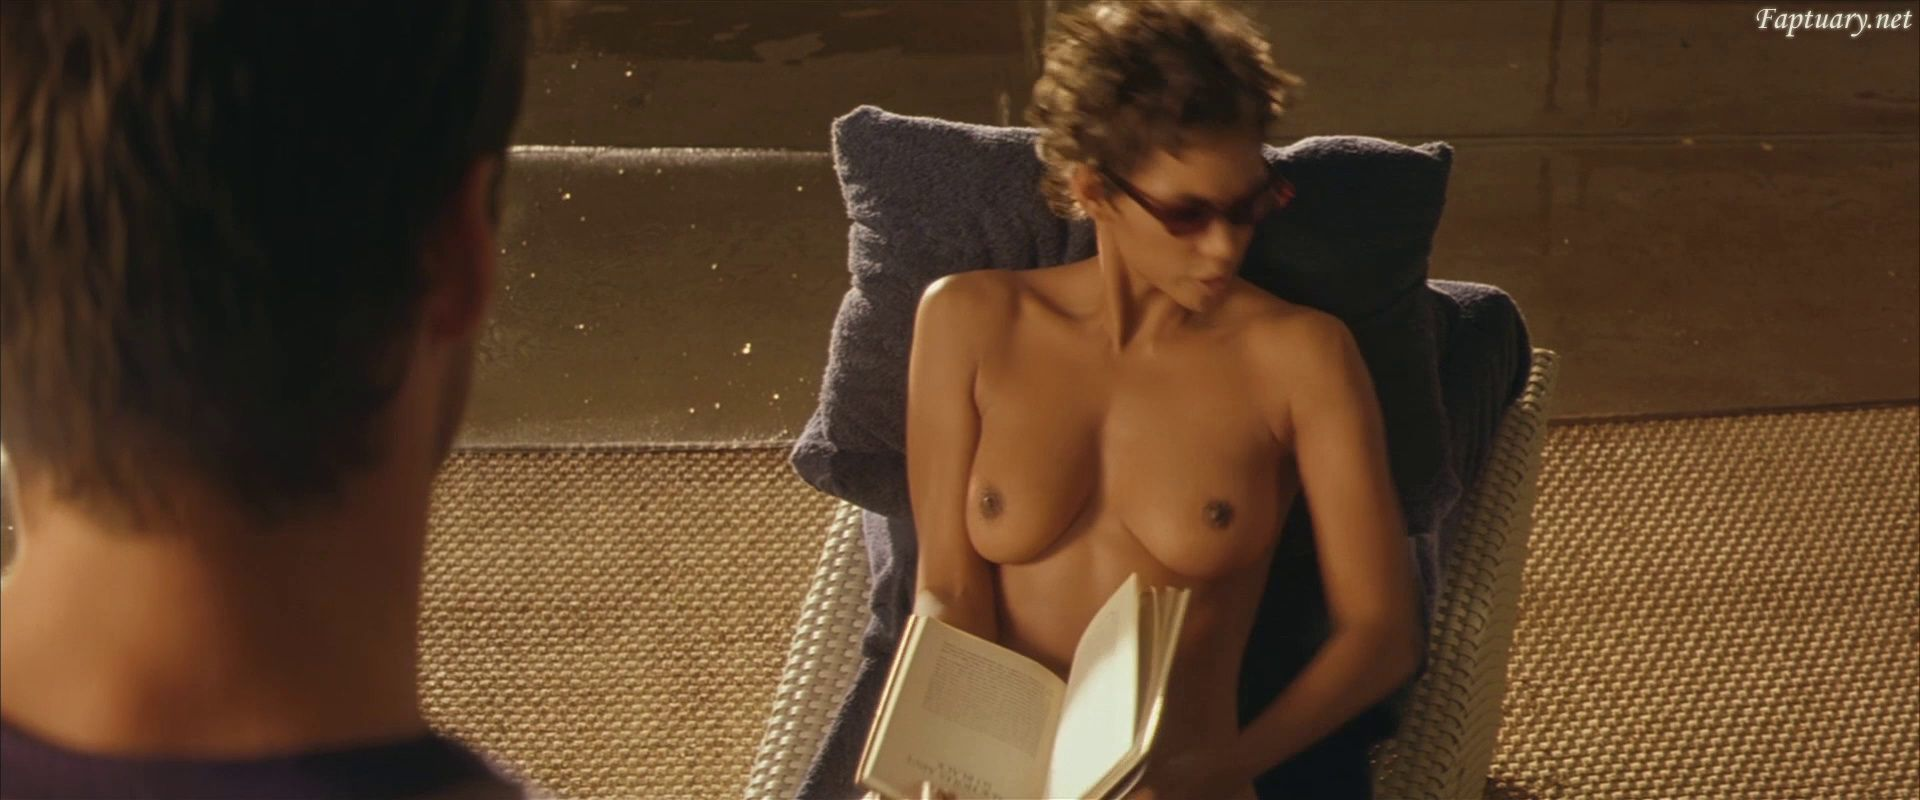 Accept. The Halle berry topless swordfish think, that